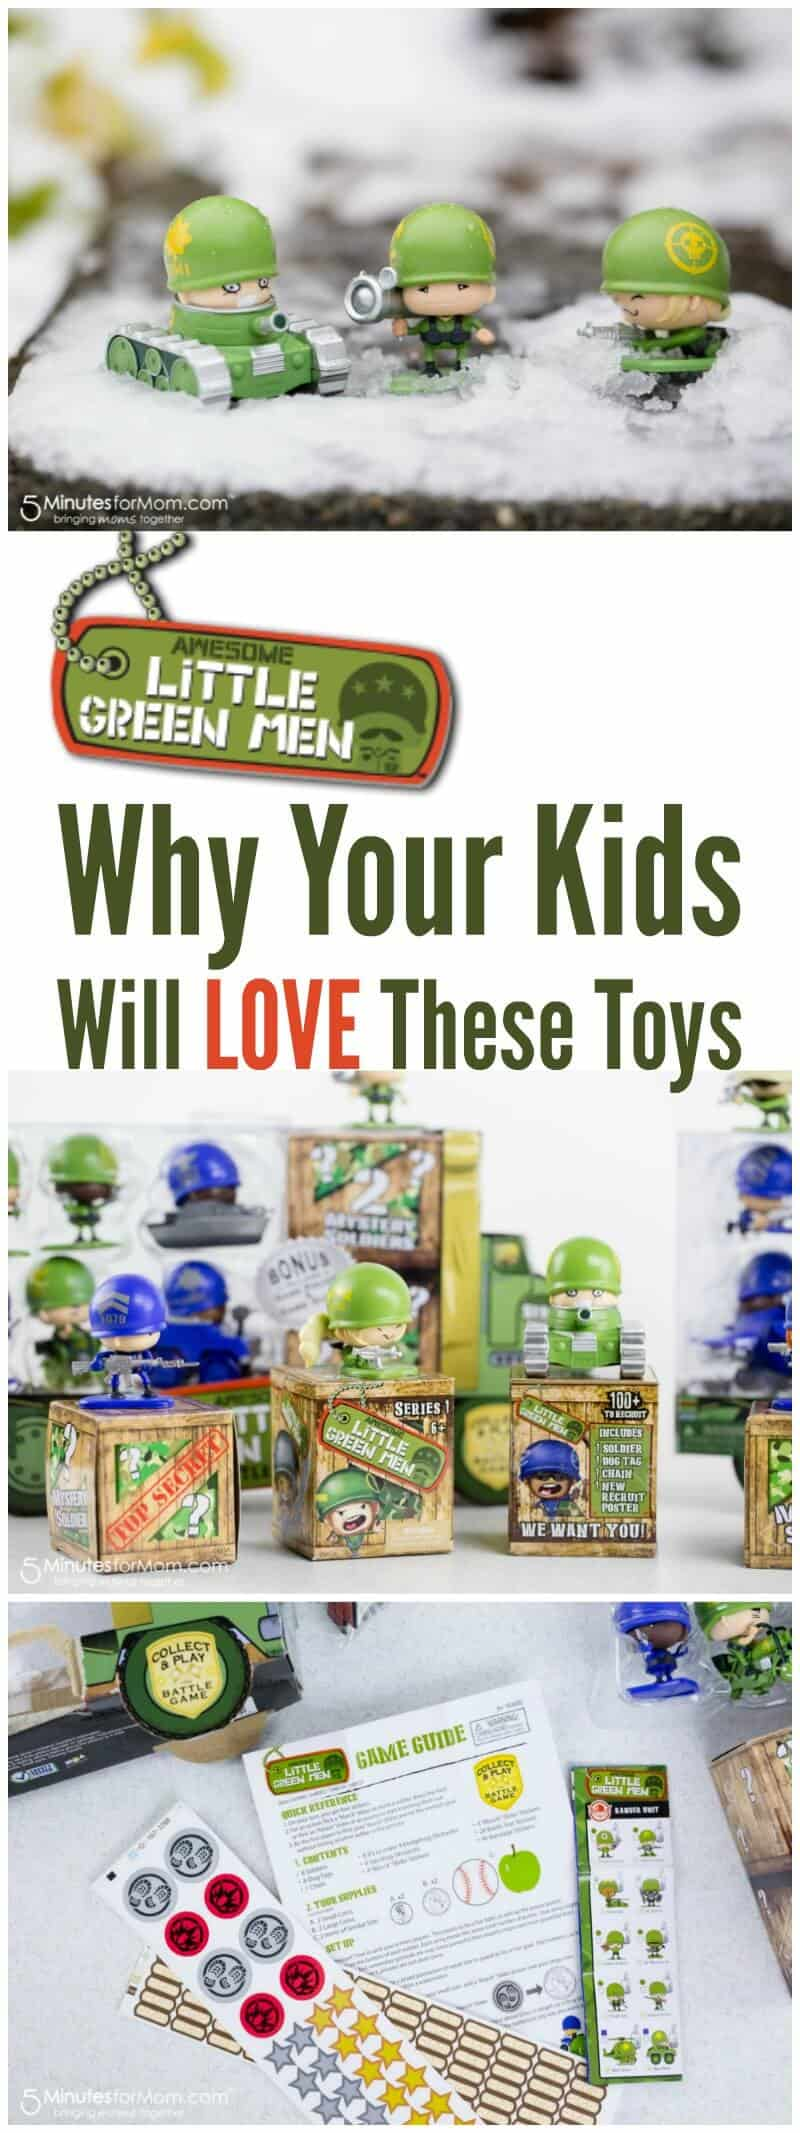 Awesome Little Green Men - Why Your Kids Will Love These Toys